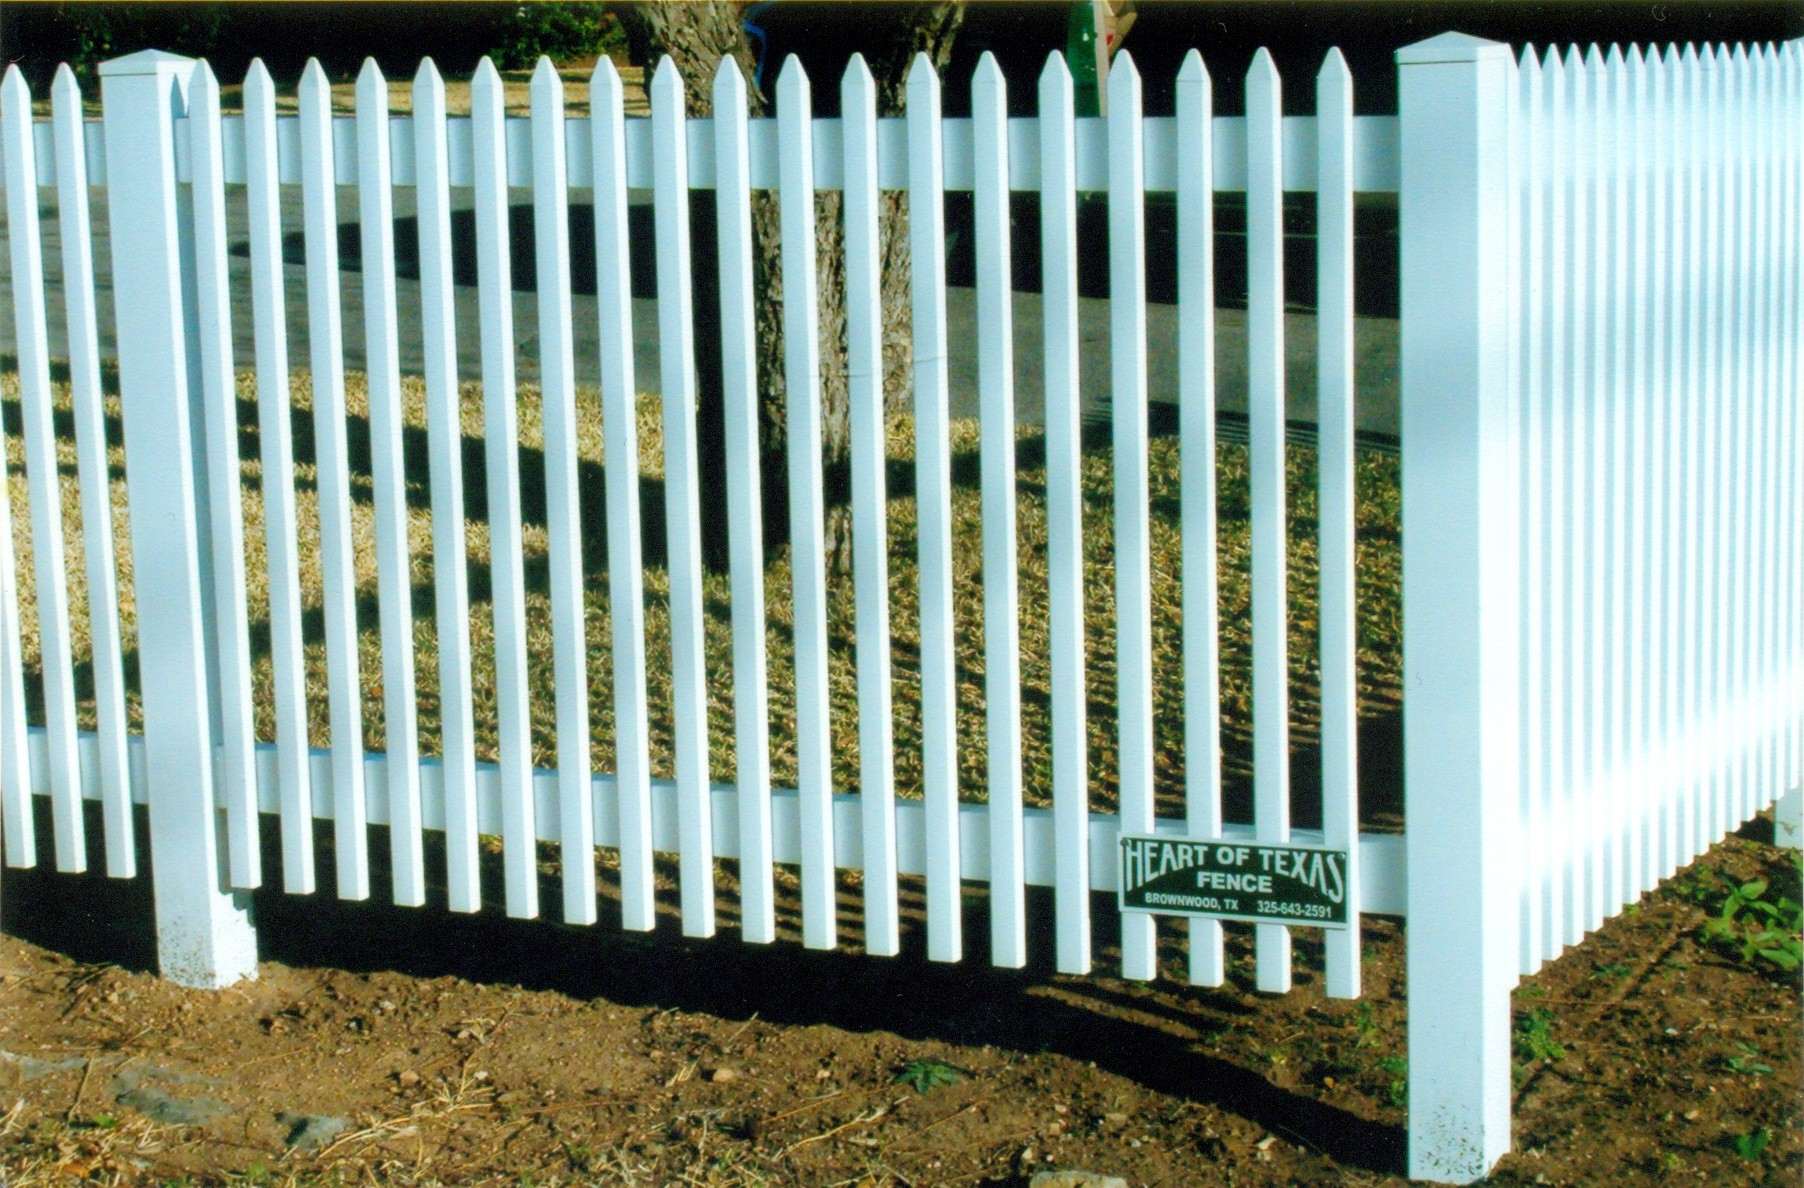 heart of texas fence